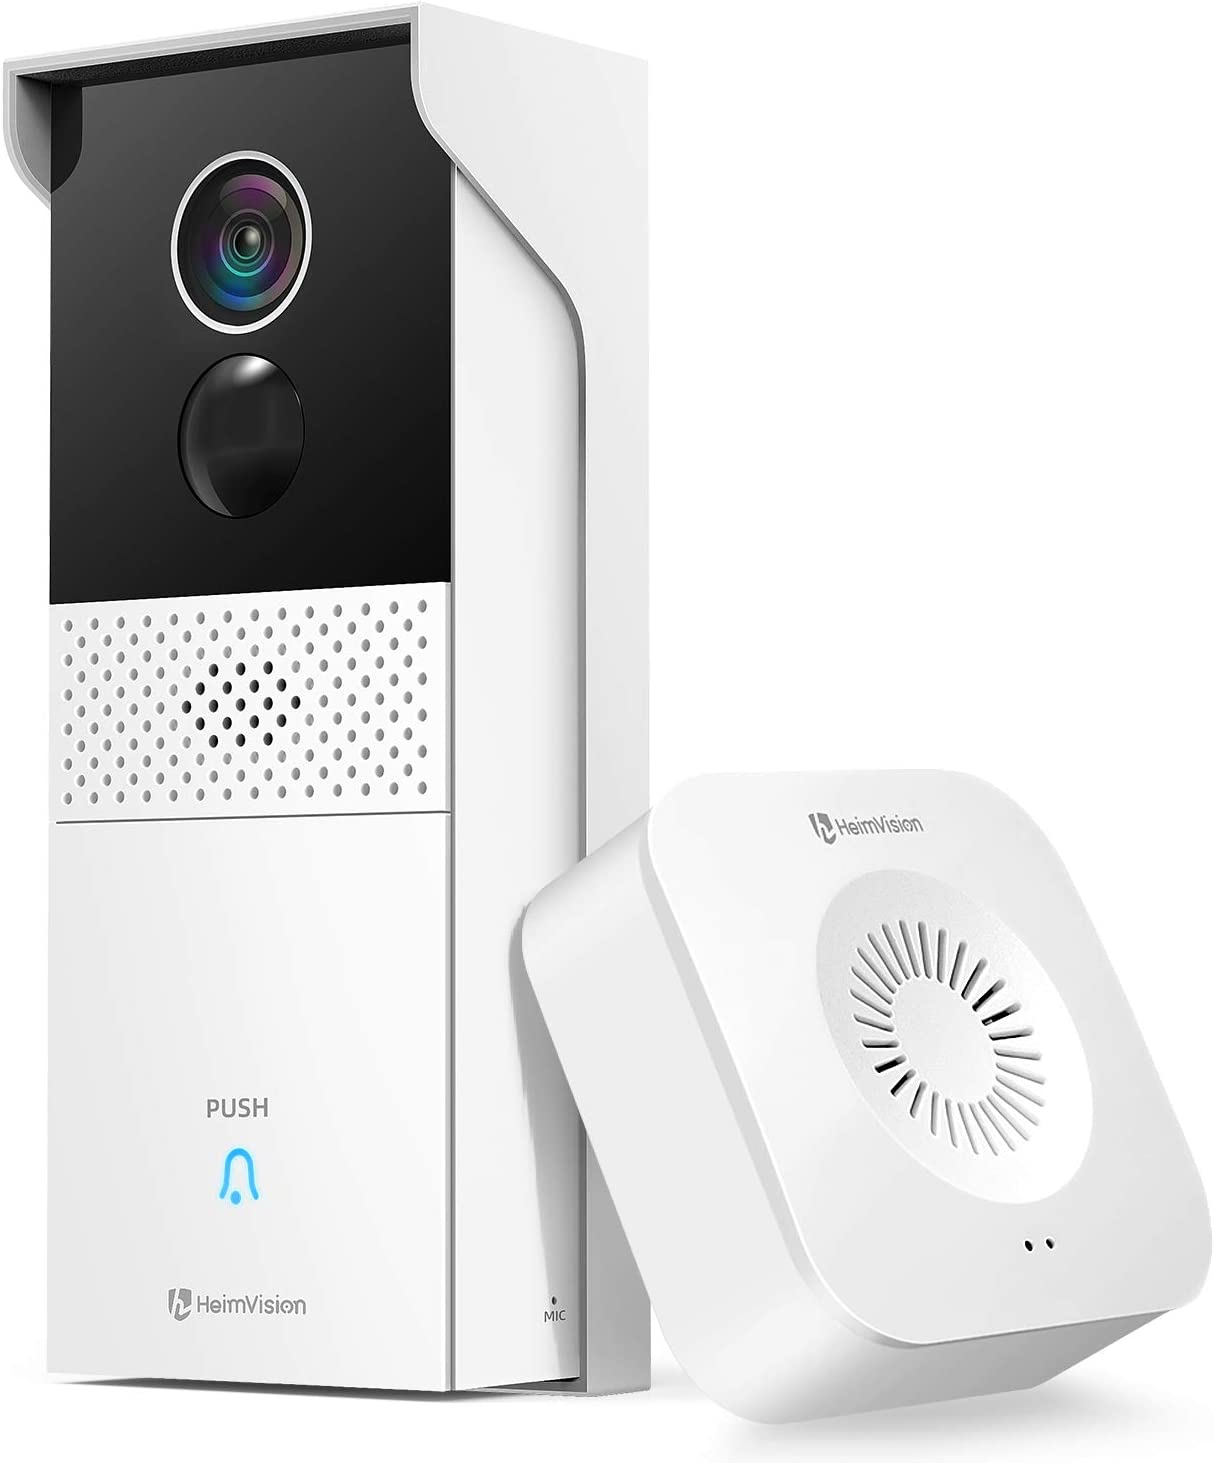 HeimVision Video Doorbell Camera, Battery-Powered Doorbell + Wireless Chime, Motion Activated Alerts, 1080P Wider View, 2-Way Audio, Remote Access, Night Vision, 2-Storage Options, Weatherproof, HMB1